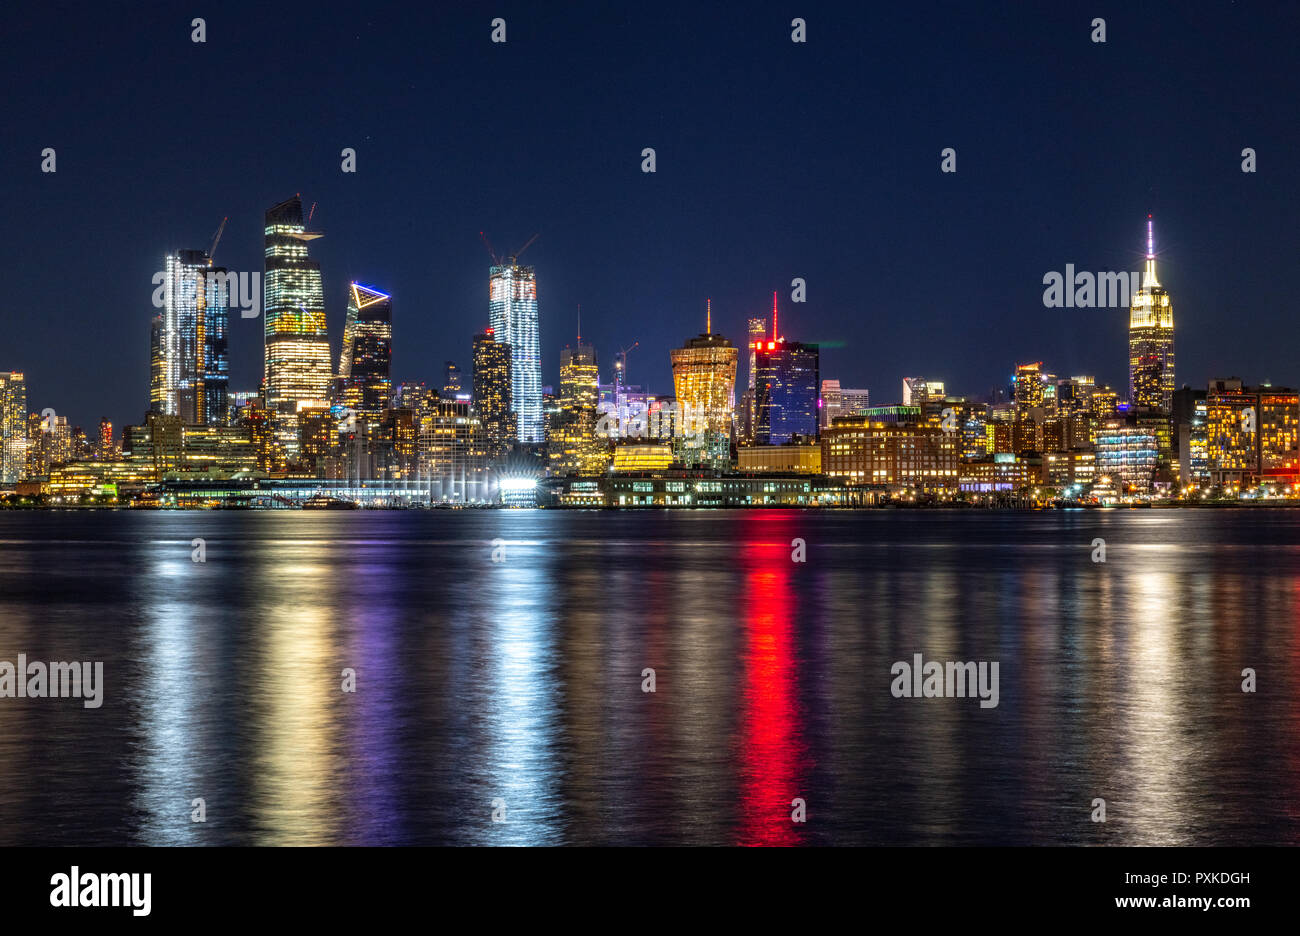 New York, USA, 21 October 2018.  The lights of Manhattan's skyline are reflected on the Hudson river in this photo taken at night from New Jersey. Pho Stock Photo